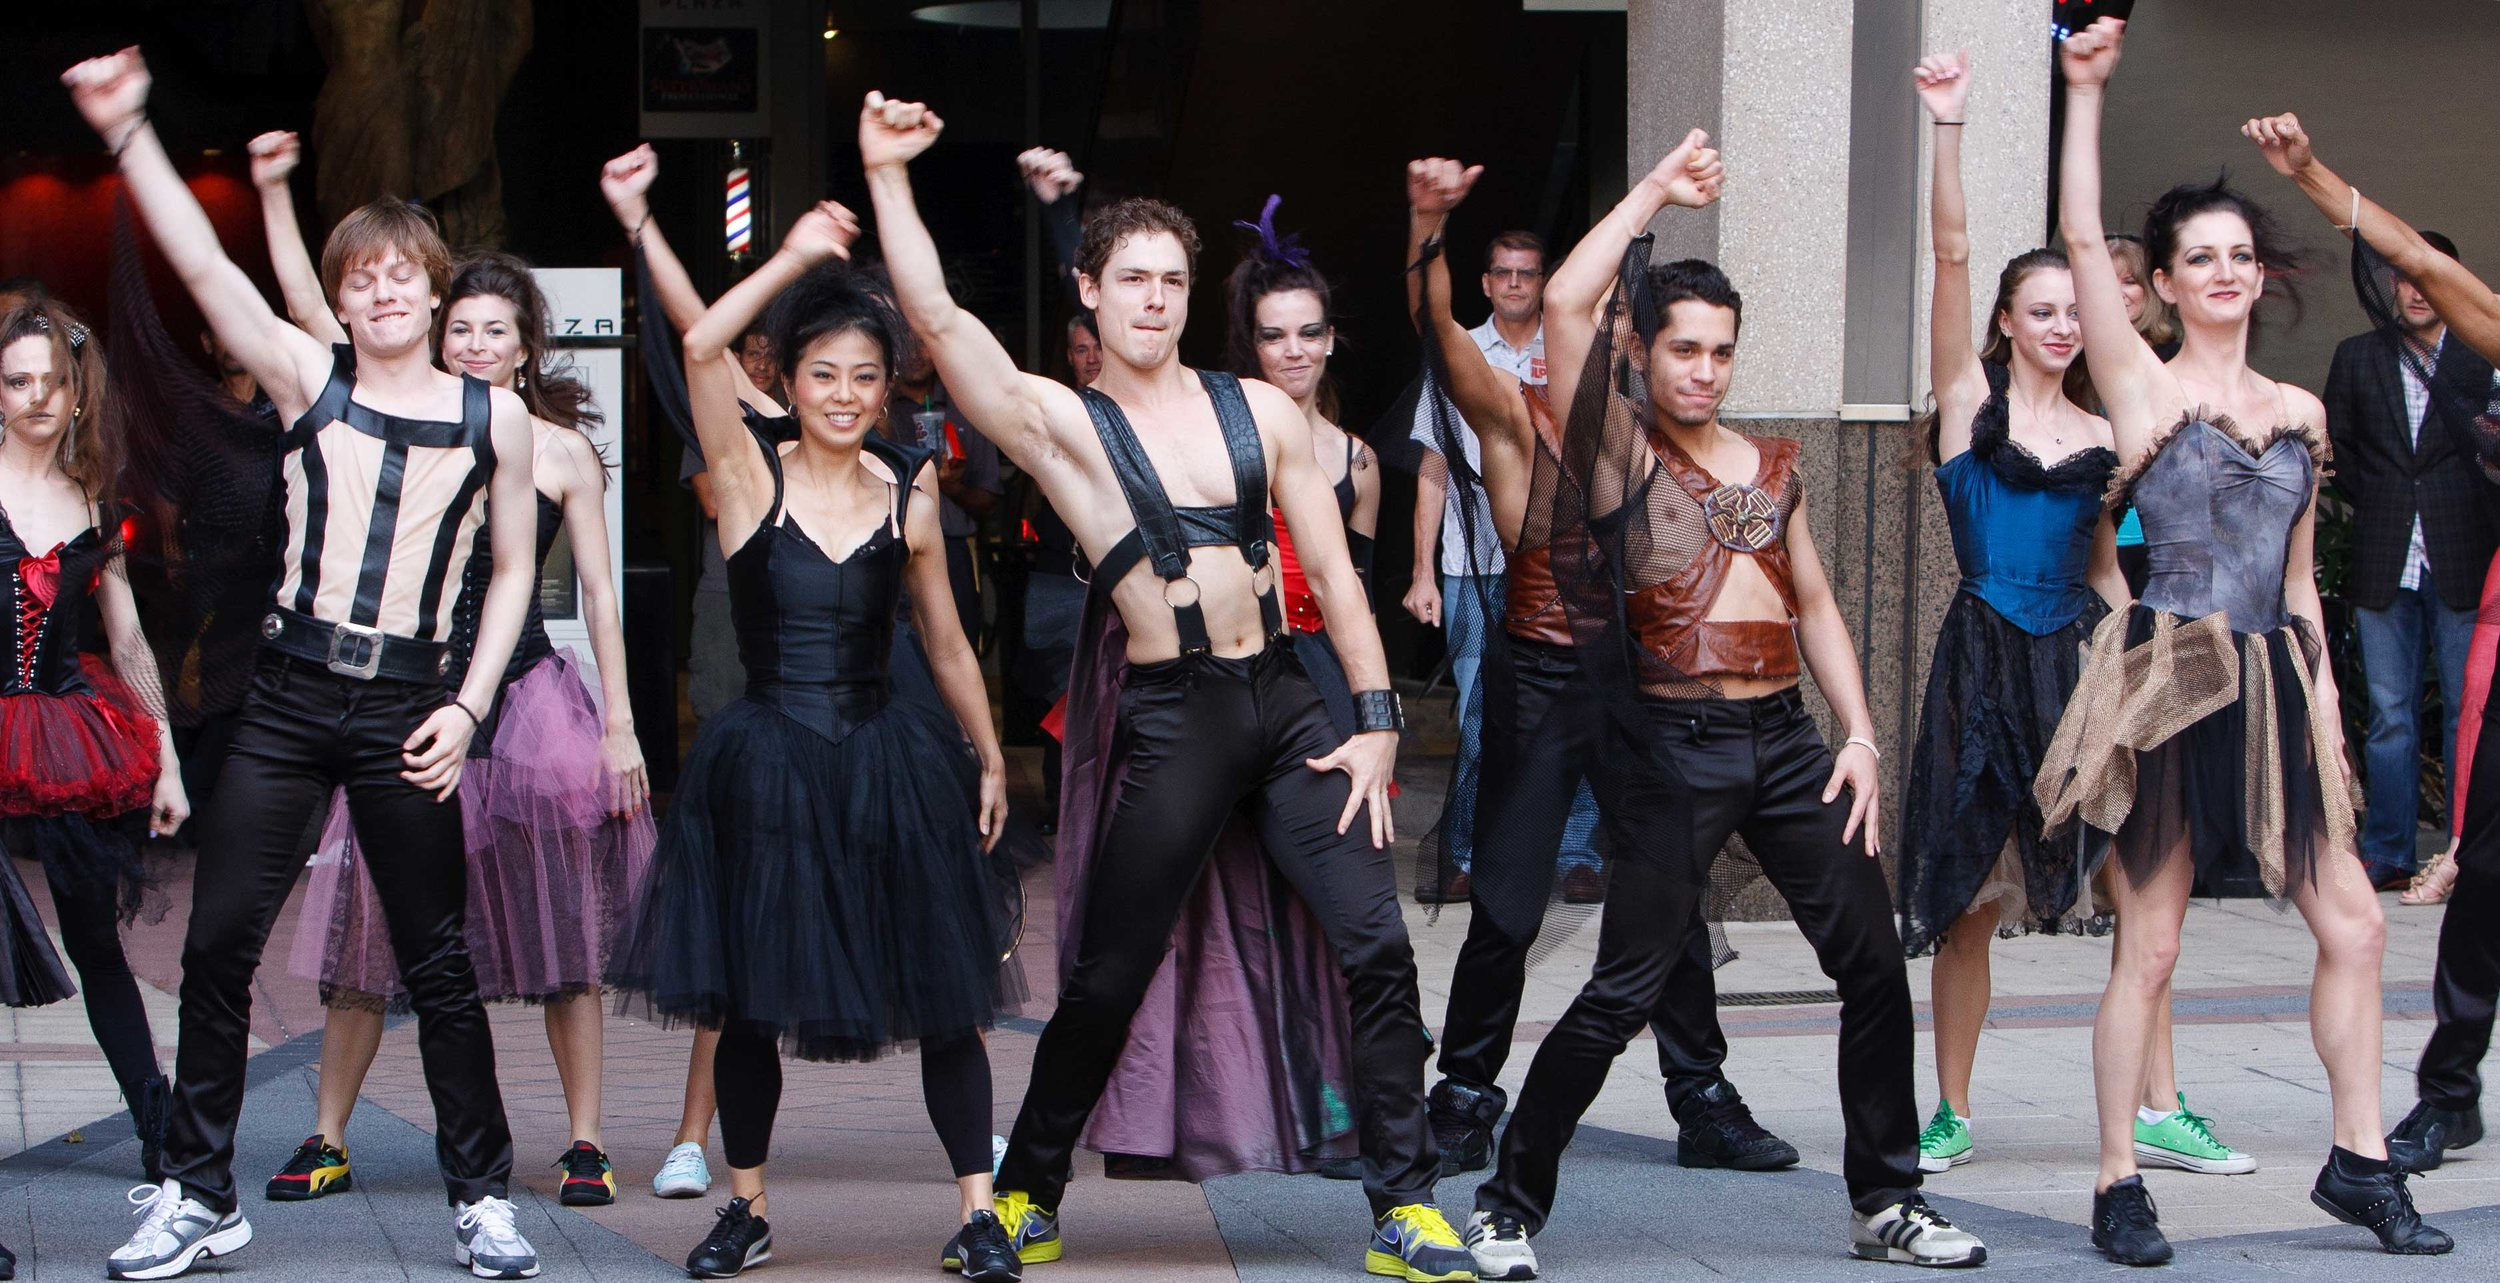 Orlando Ballet performs downtown in 2012.